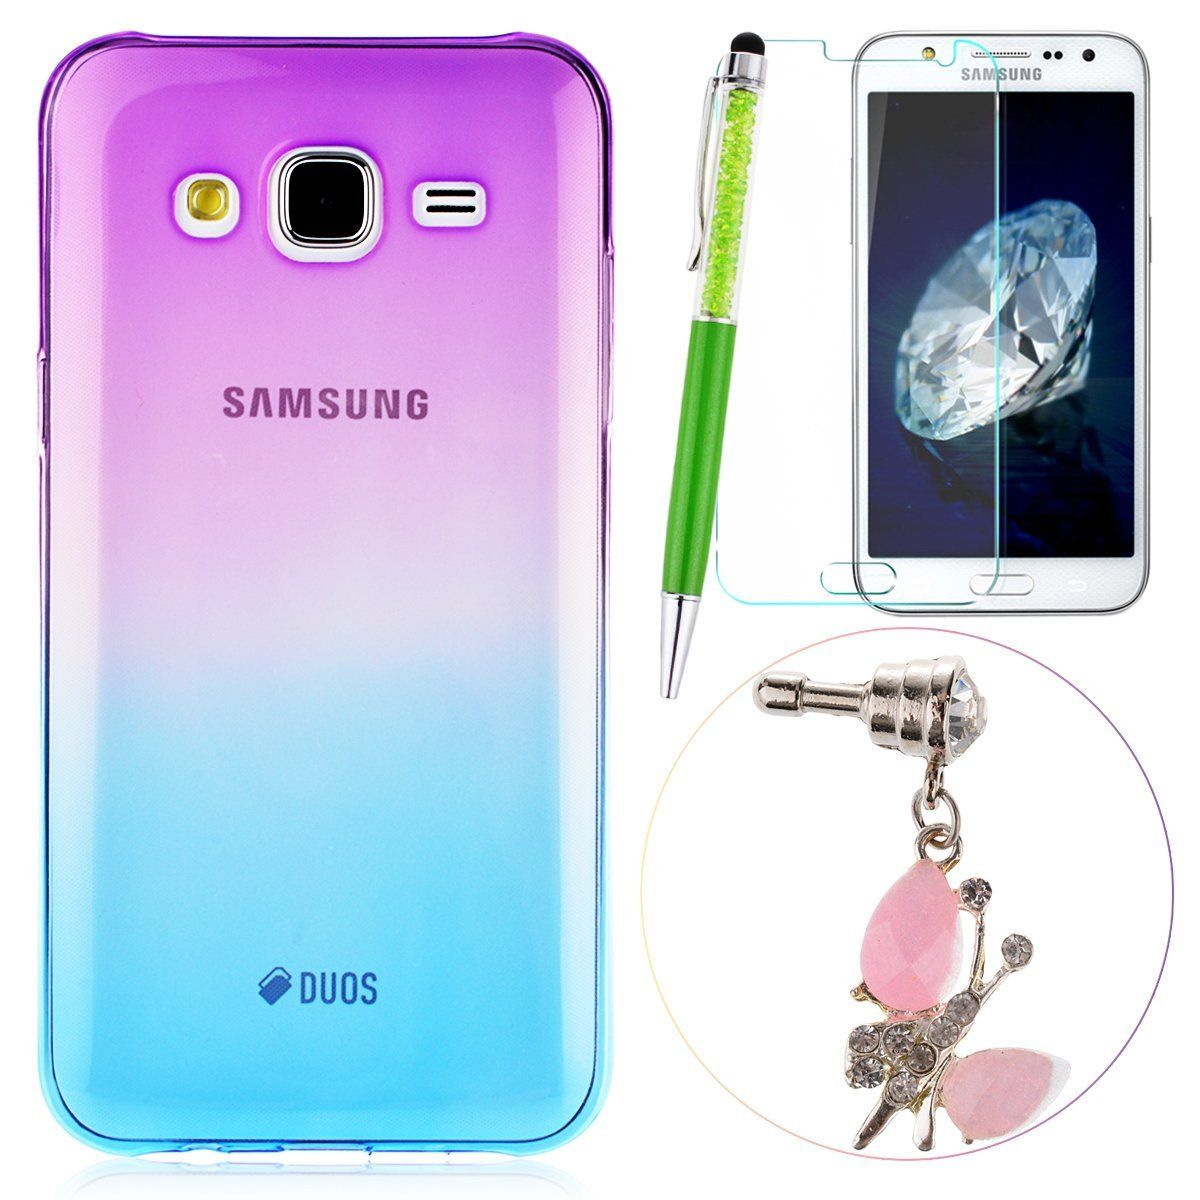 Gradient Case for Samsung Galaxy J5 GrandEver Purple Yellow Gradient Silicone Cover Soft TPU Back Cover Colourful Gradient Cover Protective Case Bumper Soft Rubber Shell Simple Light Cover + {Stylus Pen} + {Dust Plug} + {Screen Protector}: Amazon.co.uk: Kitchen & Home